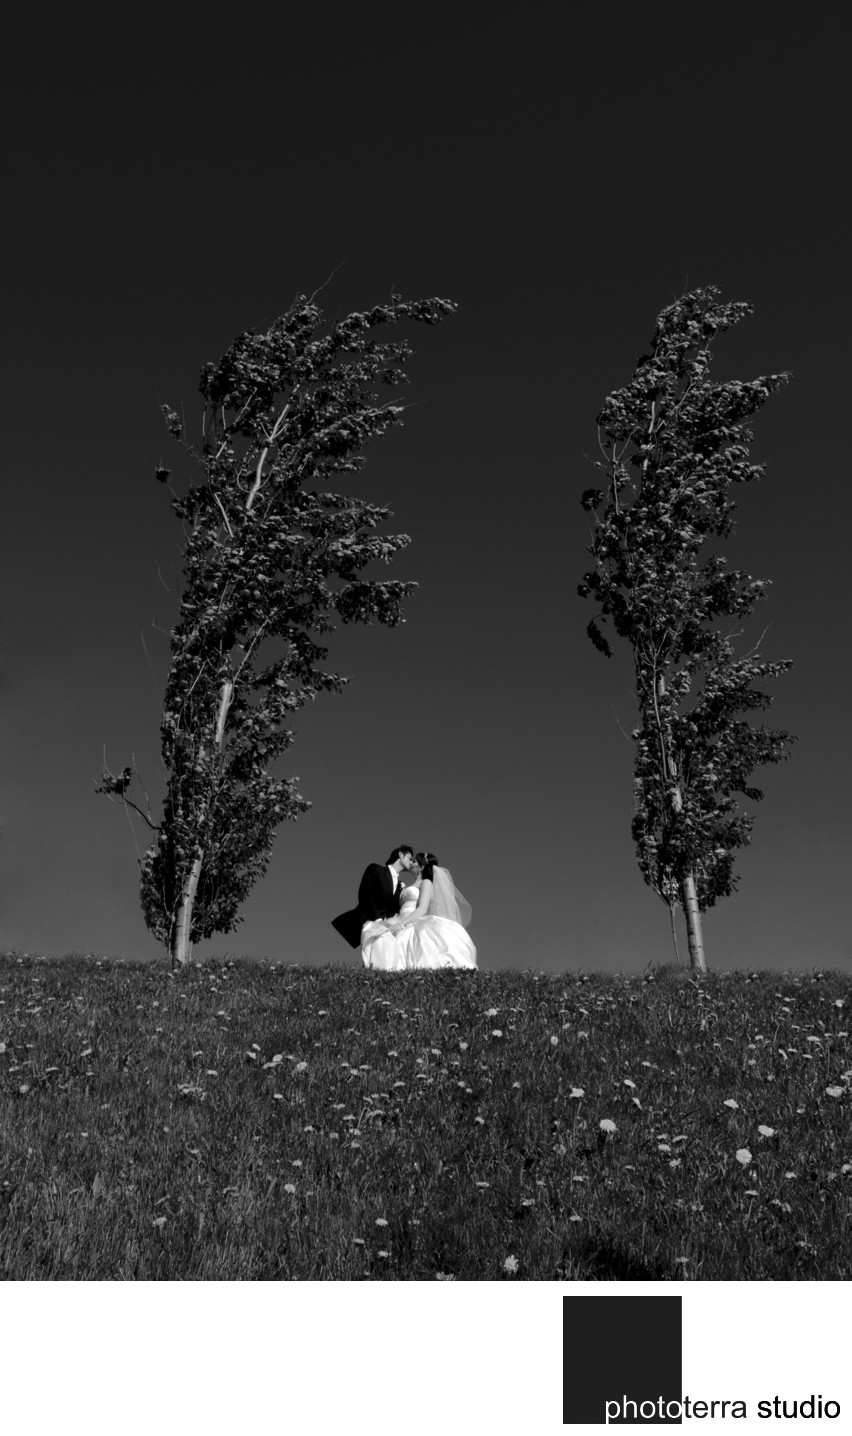 Black & White Wedding Landscape